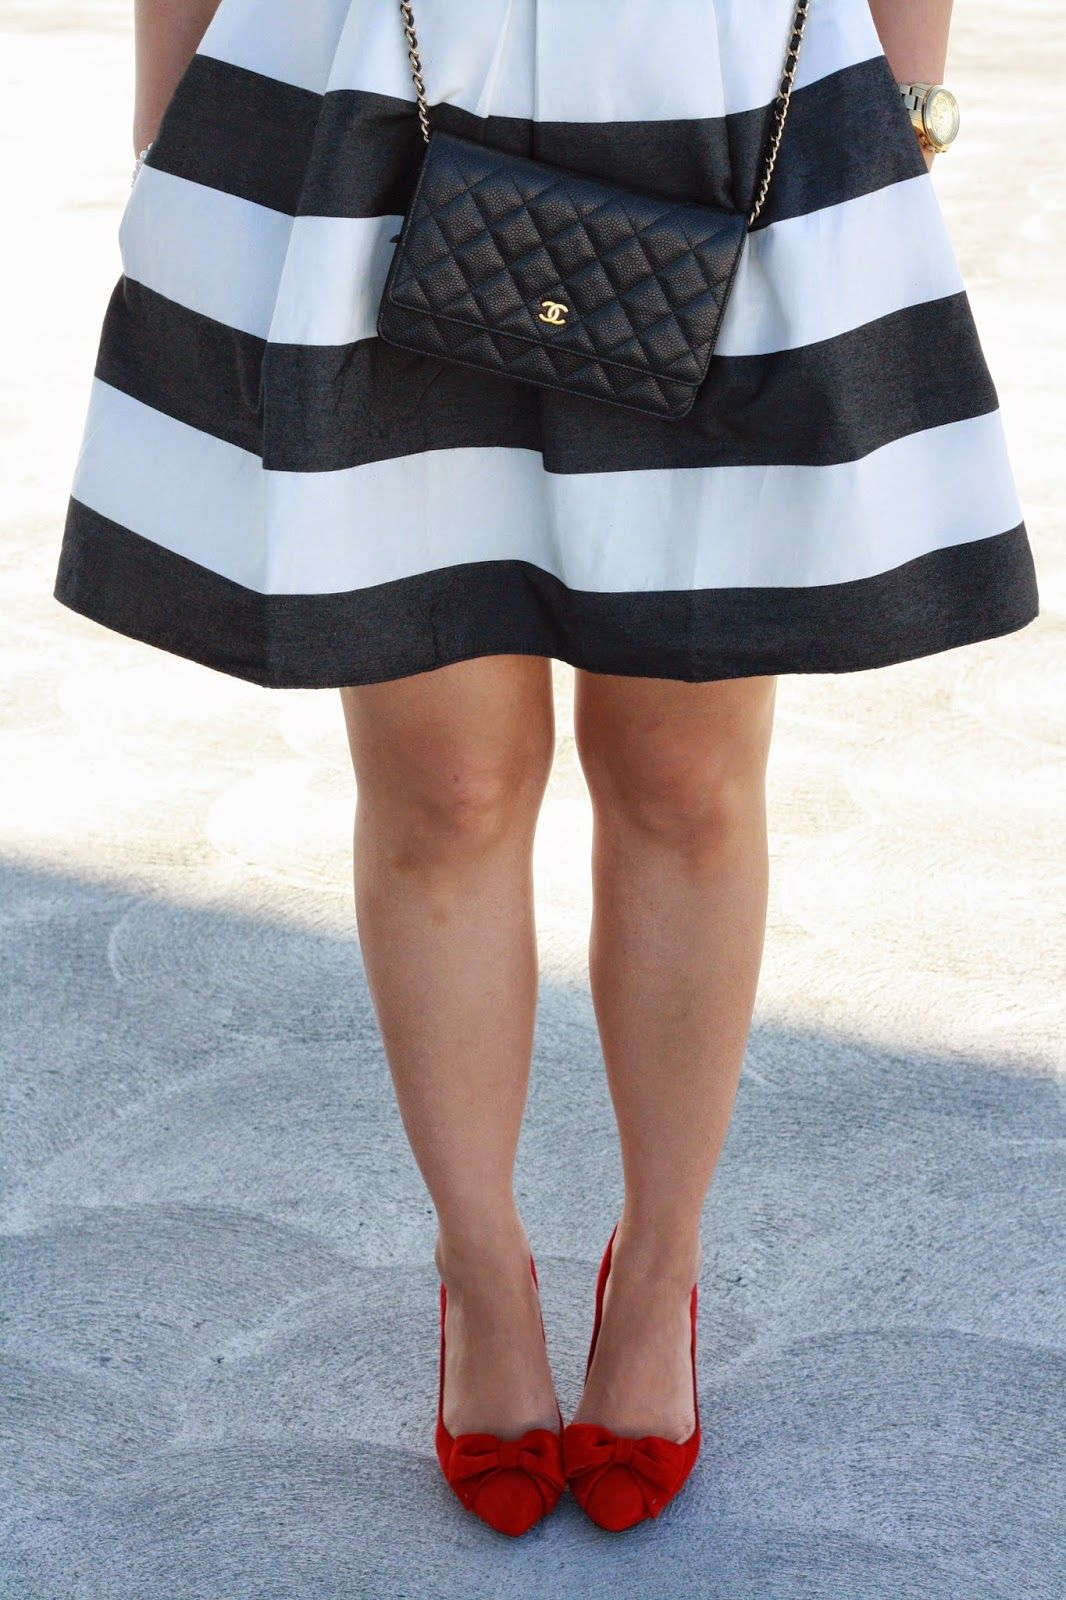 Simplyxclassic stripe gap dress red bow pumps chanel wallet on